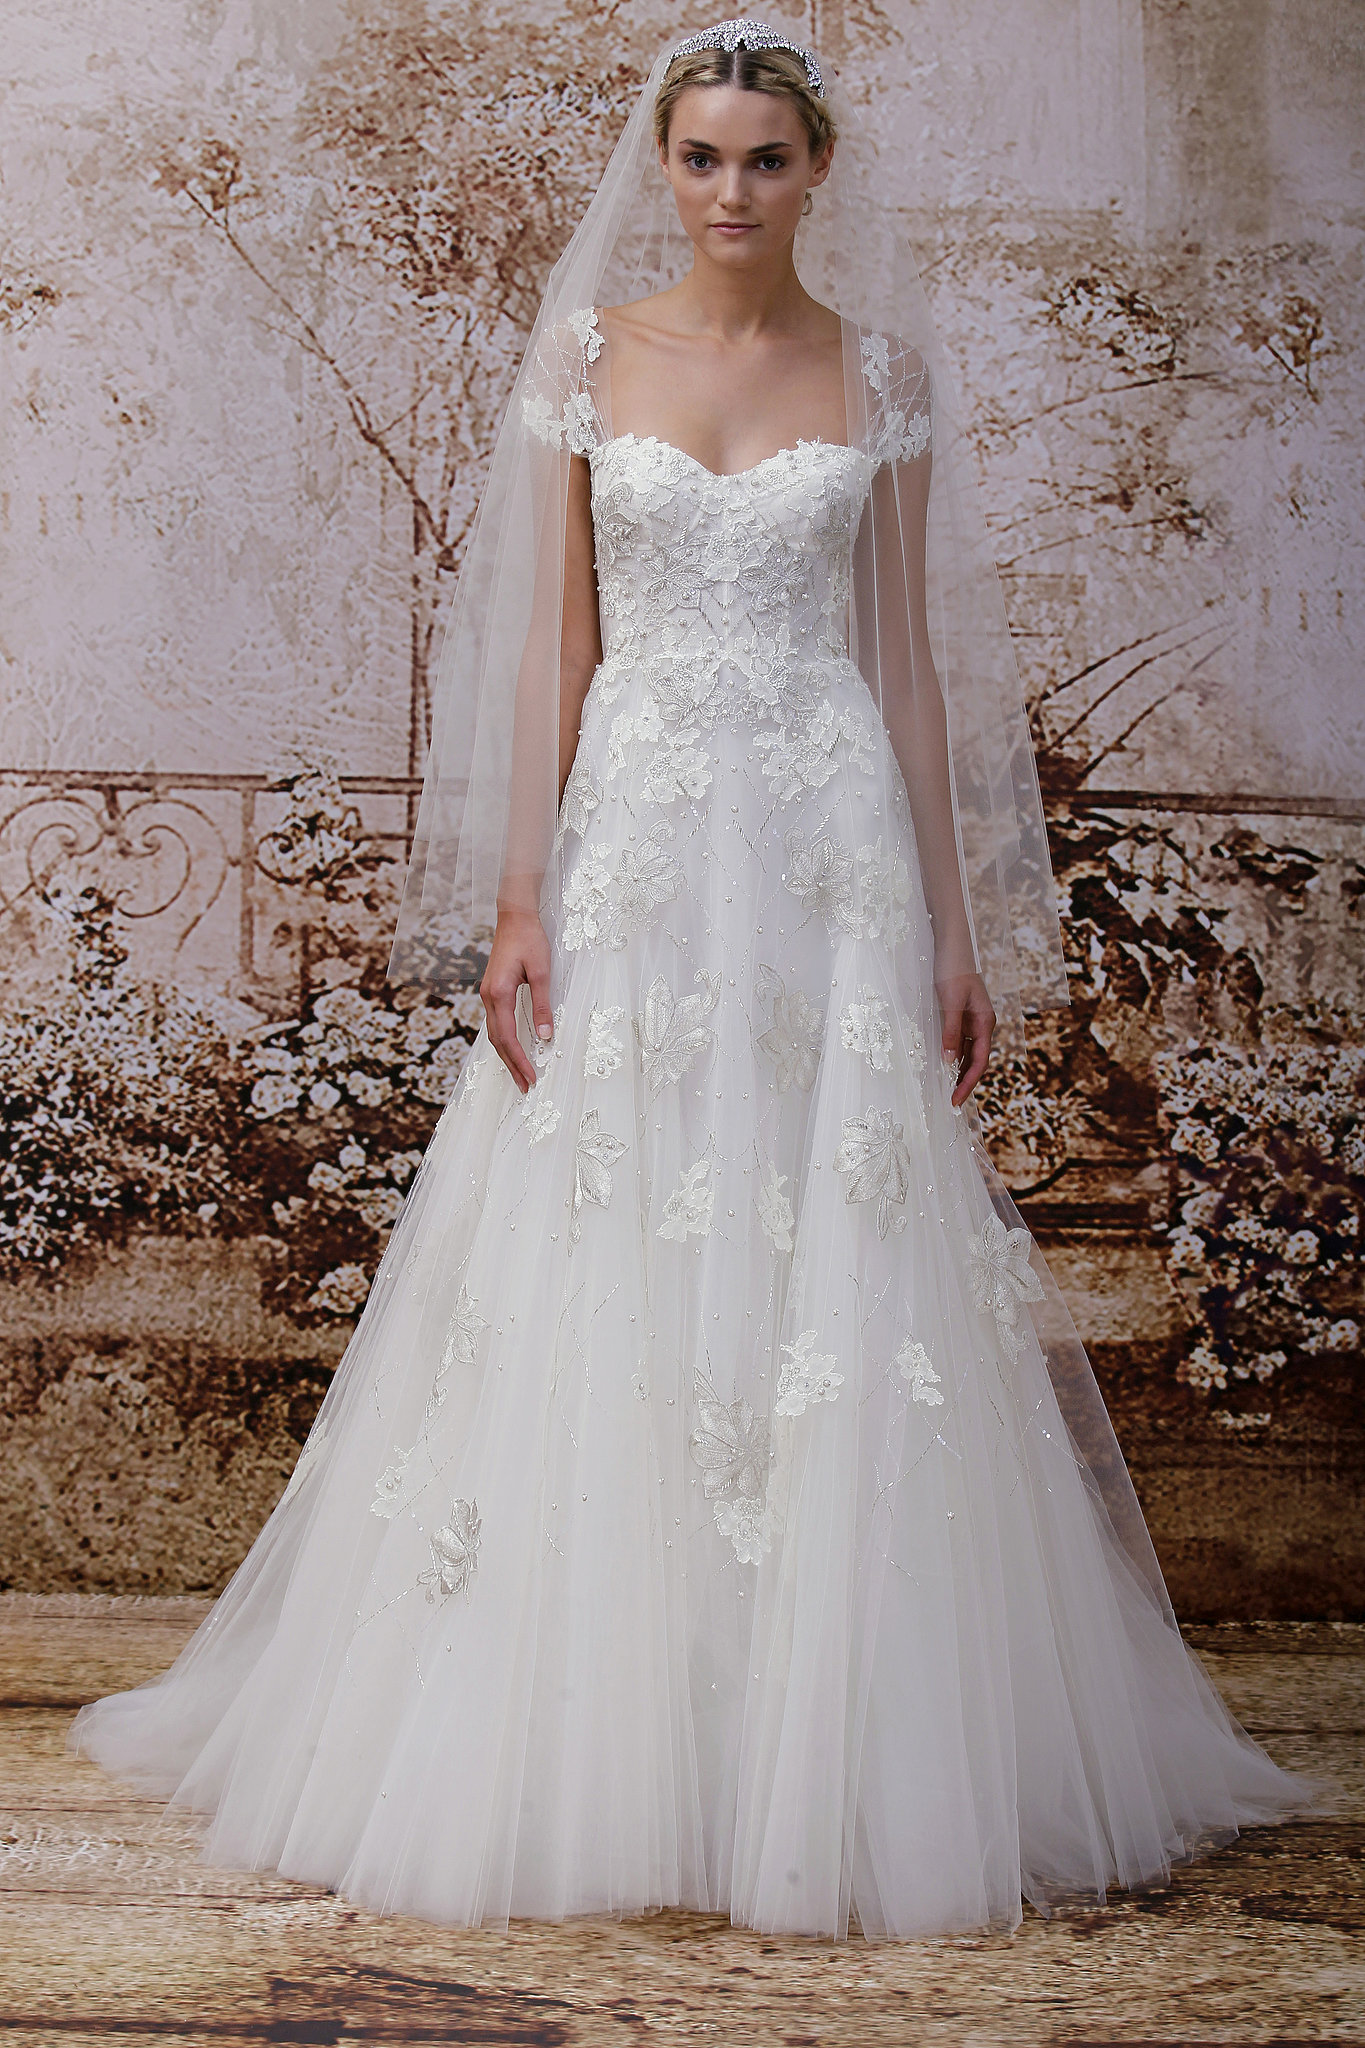 Bn bridal monique lhuillier fall 2014 collection for Monique lhuillier bridal designers